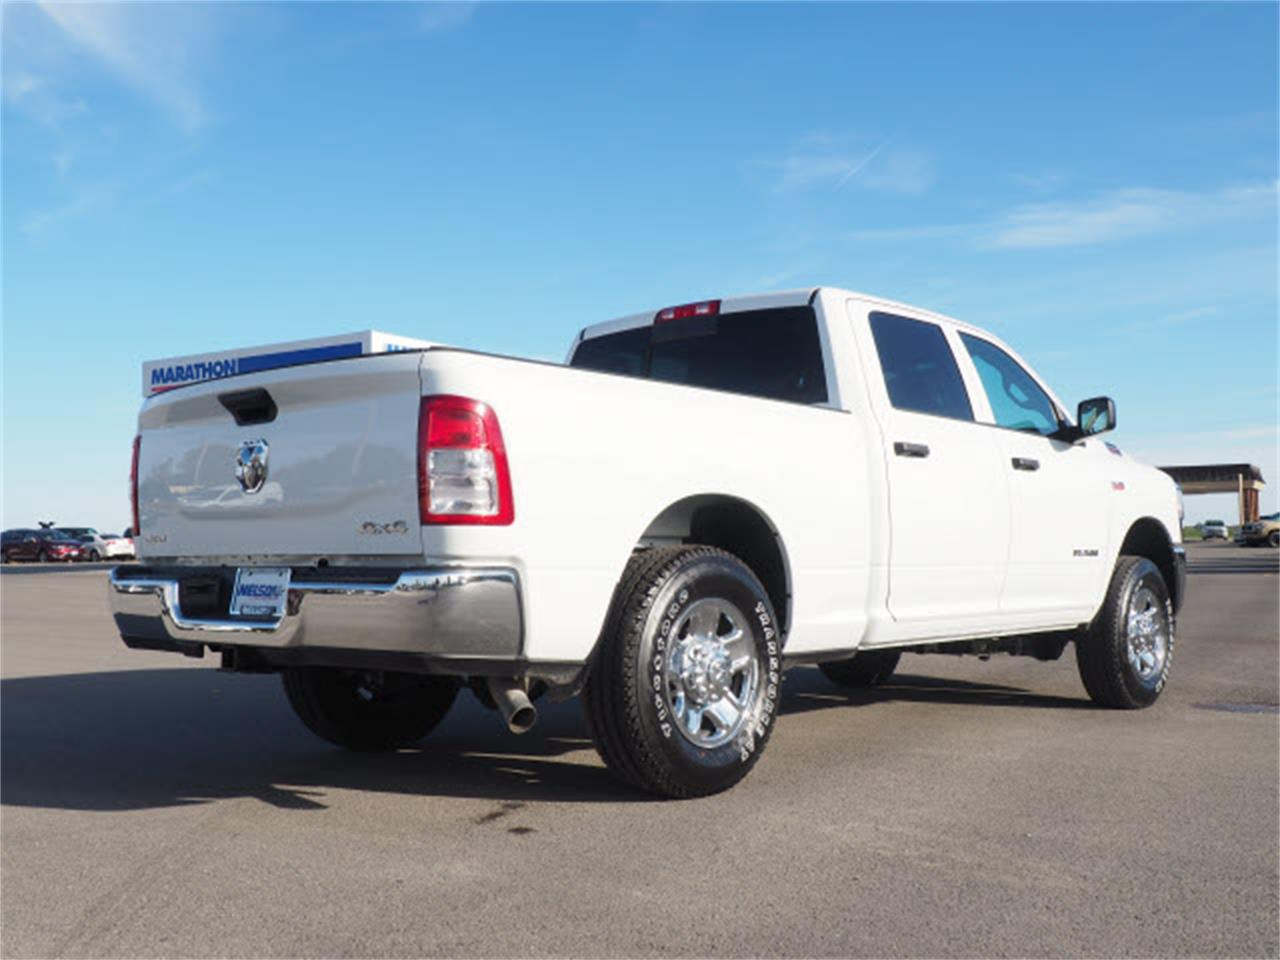 2019 Dodge Ram 2500 (CC-1327545) for sale in Marysville, Ohio